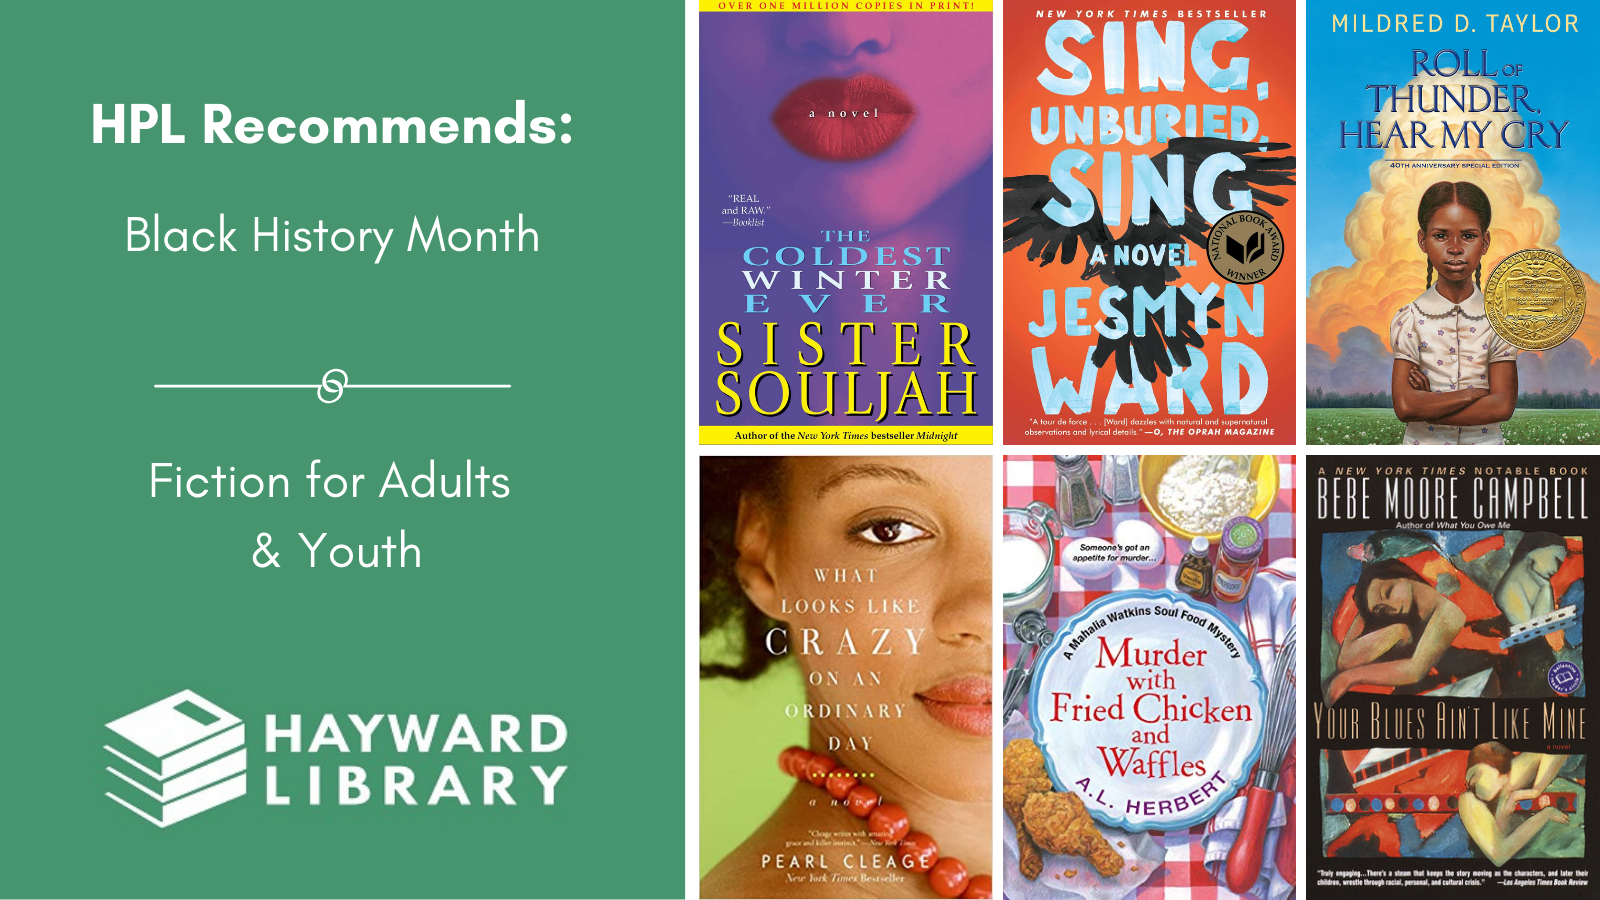 Collage of book covers with a green block on left side that says HPL Recommends, Black History Month, Fiction for Adults & Youth in white text, with Hayward Library logo below it.